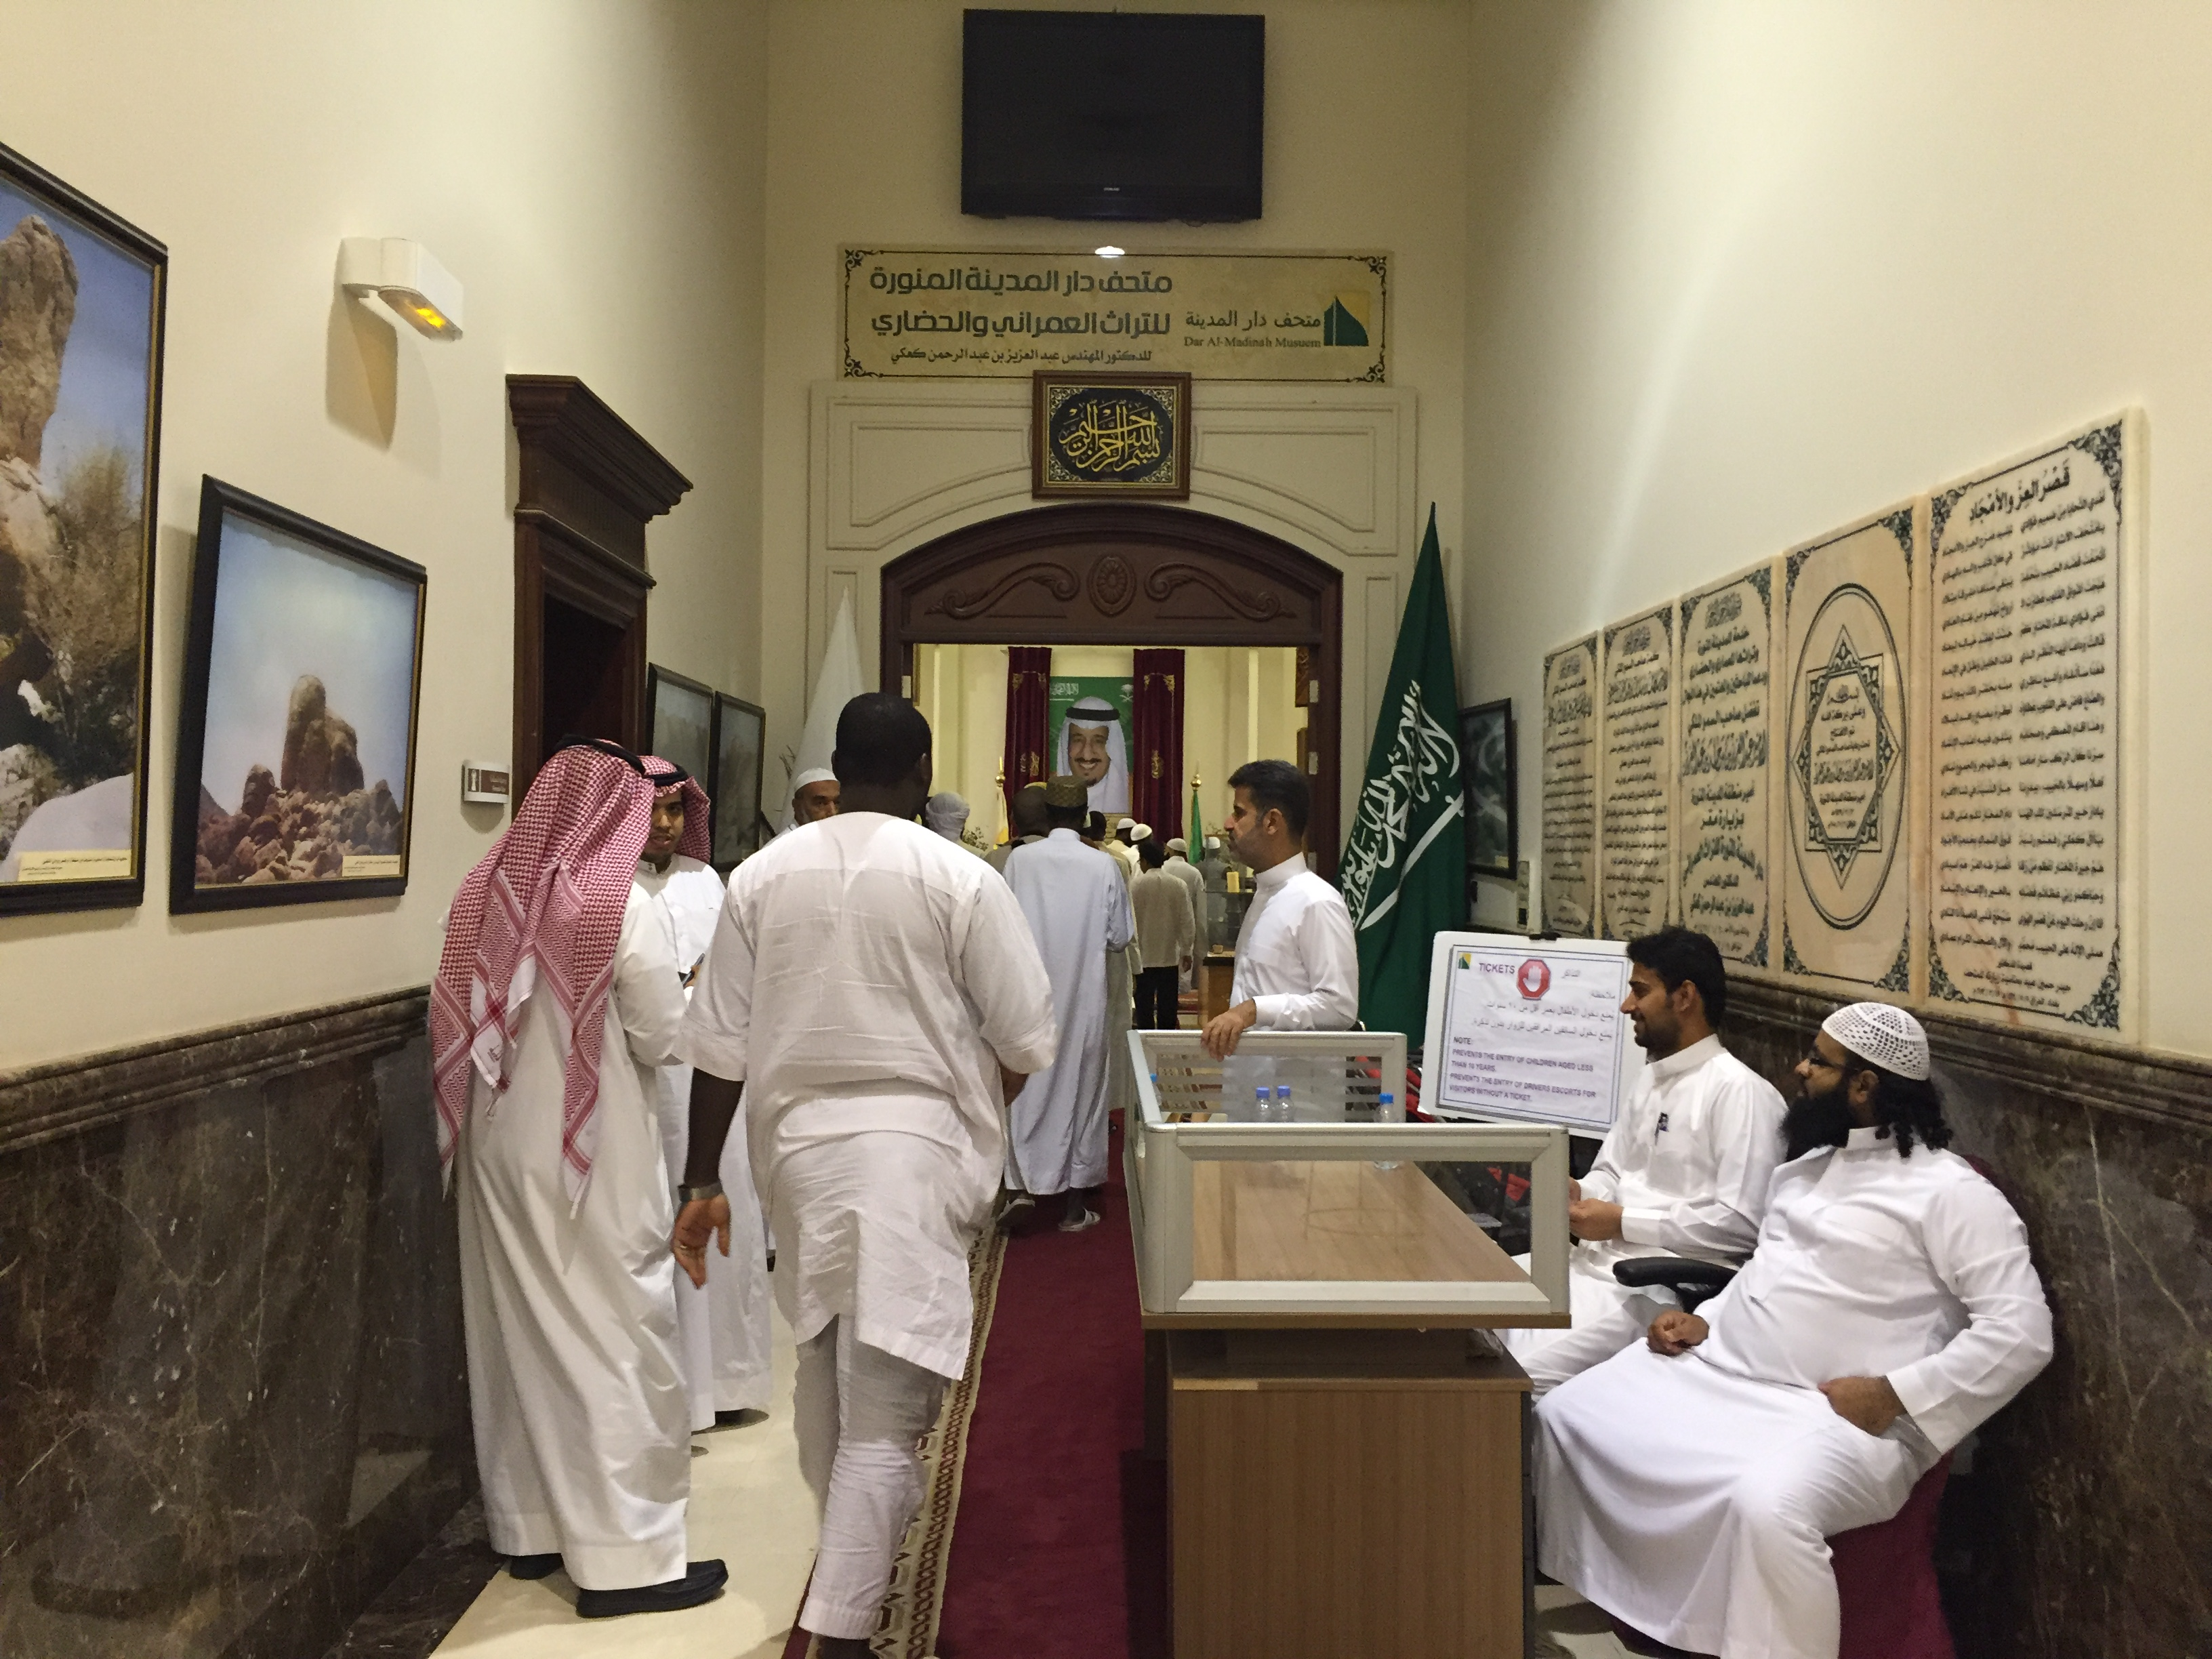 Visit Medinah's rail station turned museum, Al Madina Museum. Source: Wikimedia